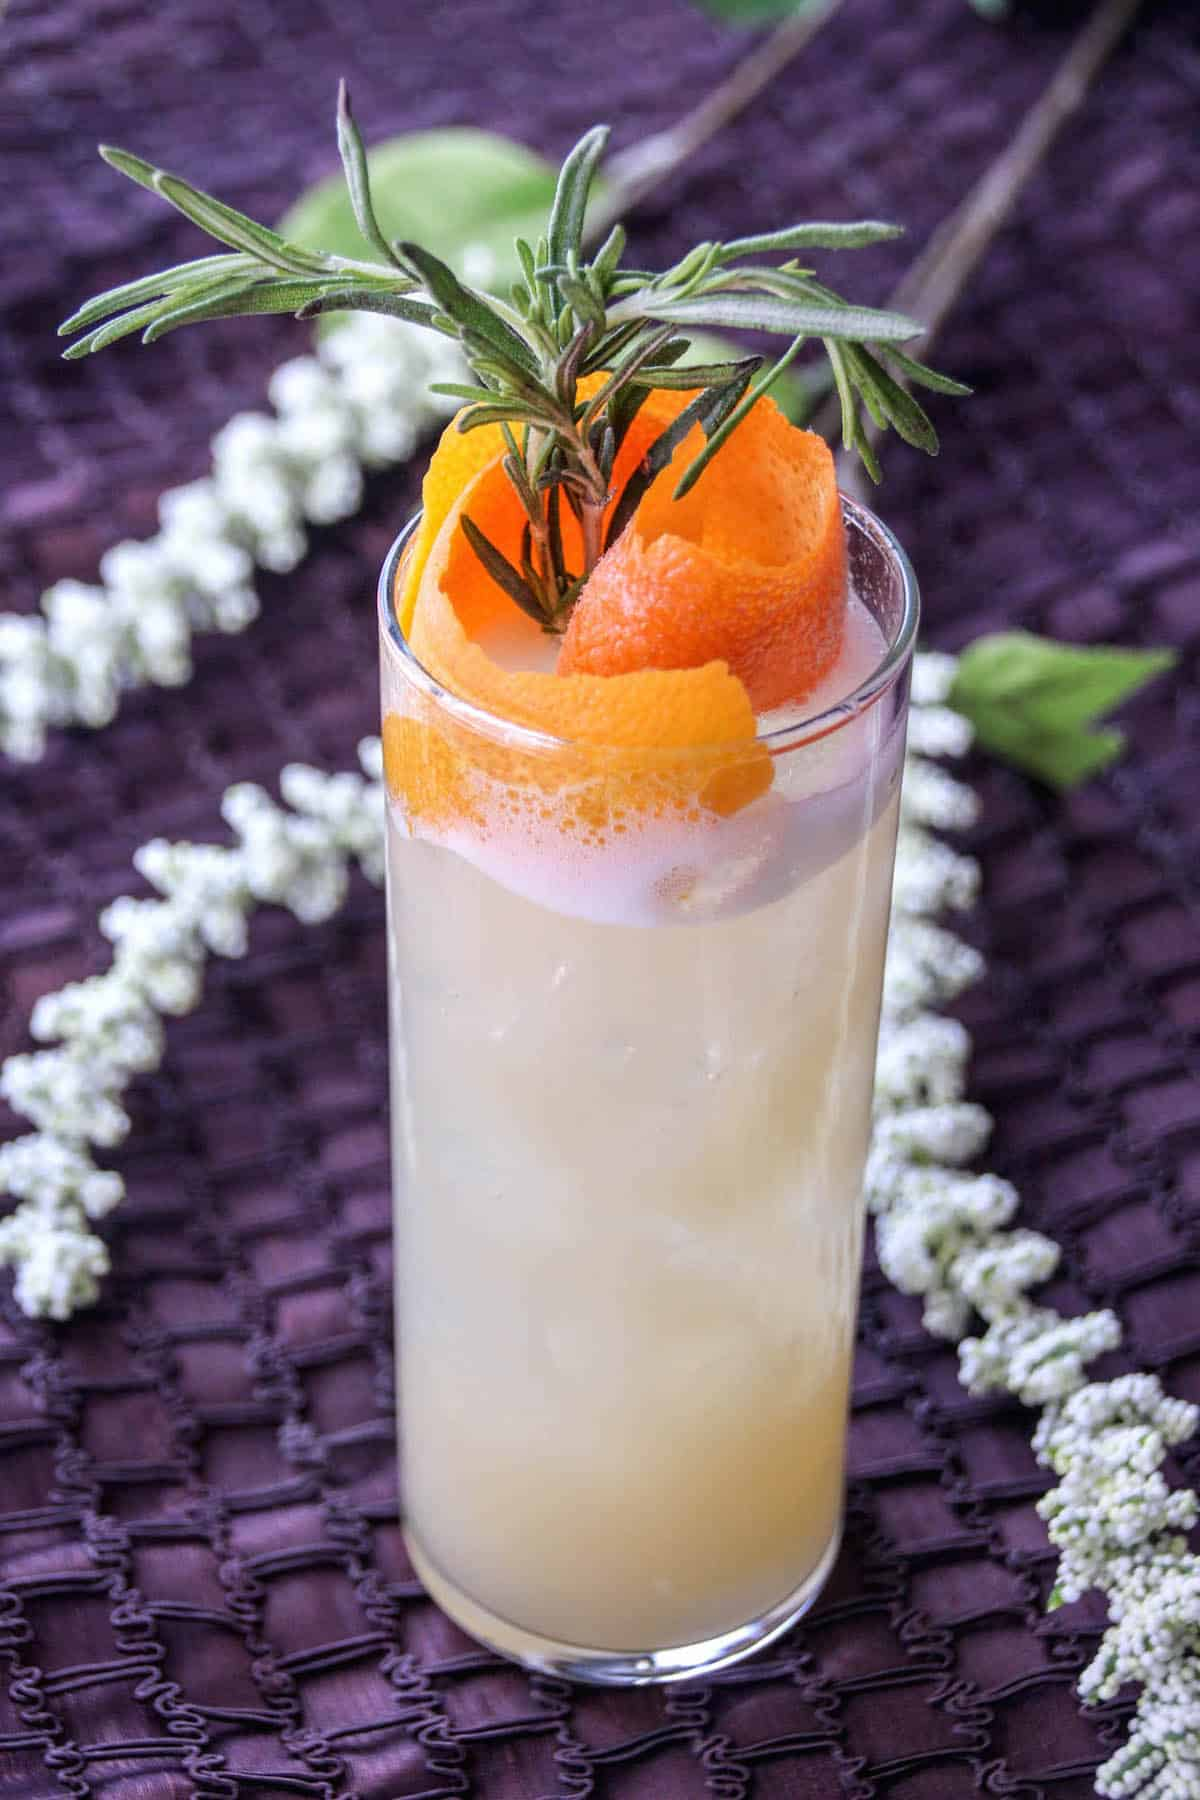 Named for the vodka and Kinky Gold found within, this orange and grey coconut cocktail recipe is a delicious and refreshing summer treat!